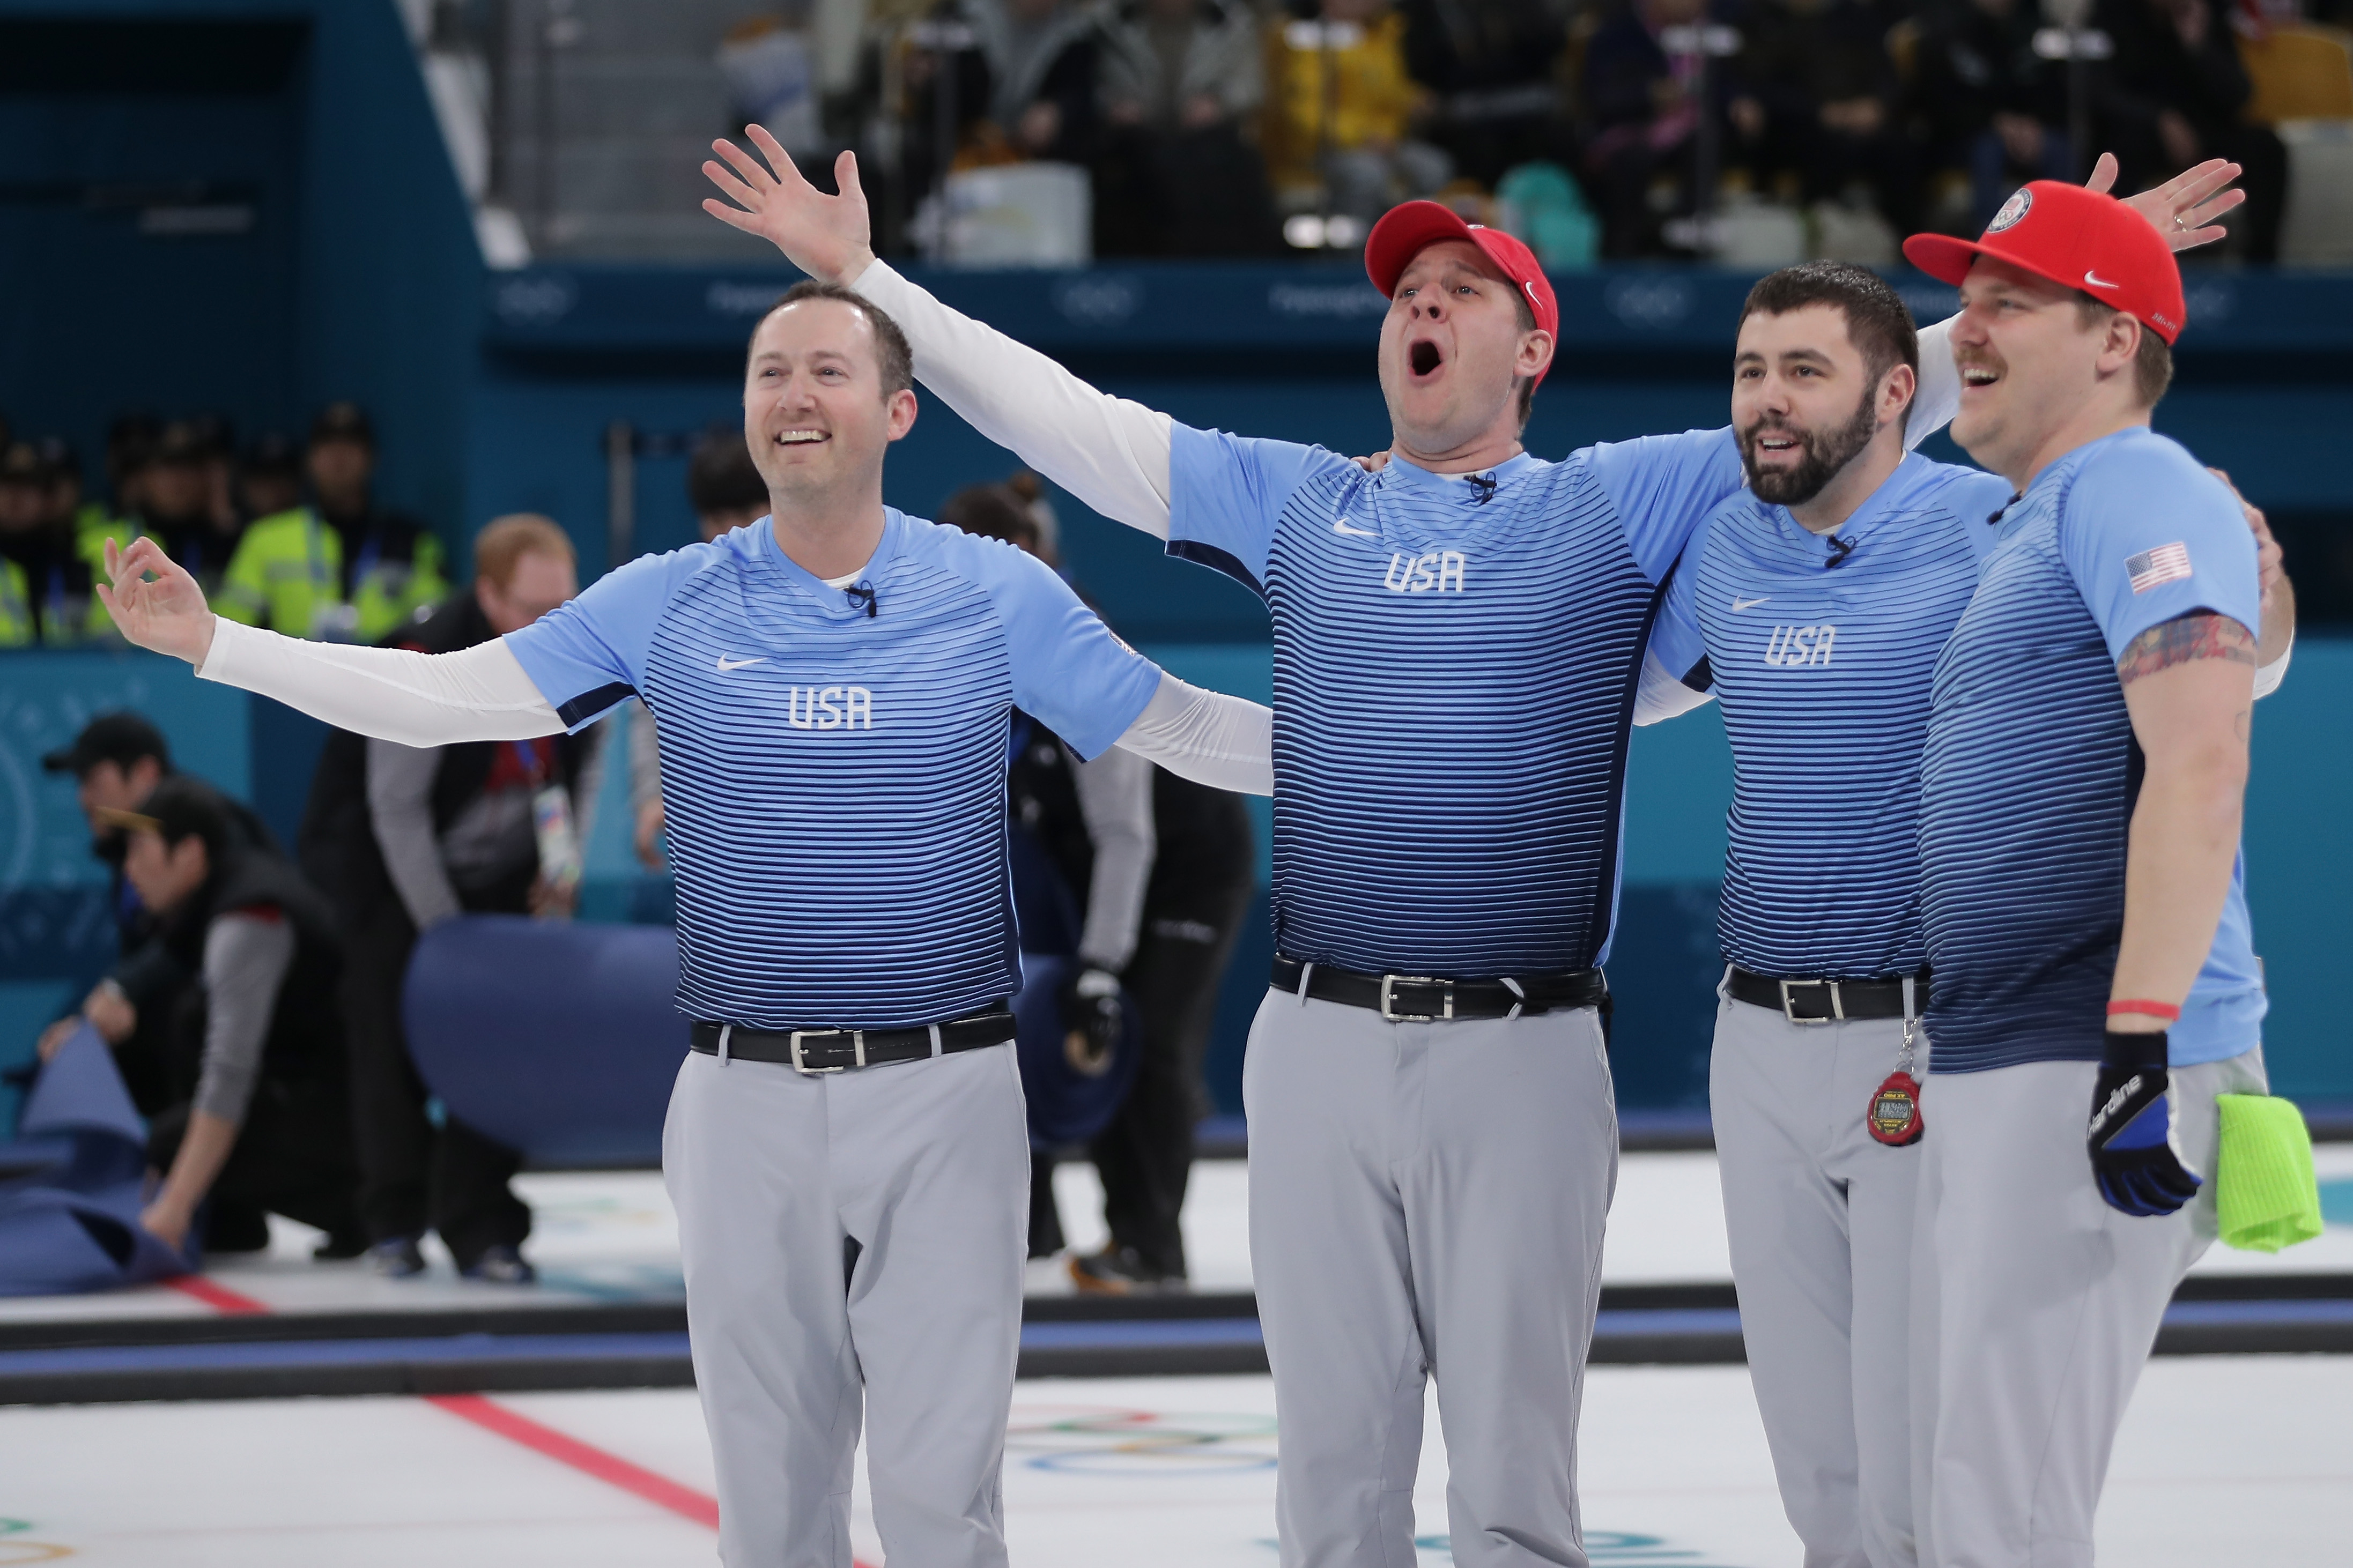 Team United States reacts after defeating Sweden 10-7 to win the Curling Men's Gold Medal game on day fifteen of the PyeongChang 2018 Winter Olympic Games at Gangneung Curling Centre on February 24, 2018 in Gangneung, South Korea